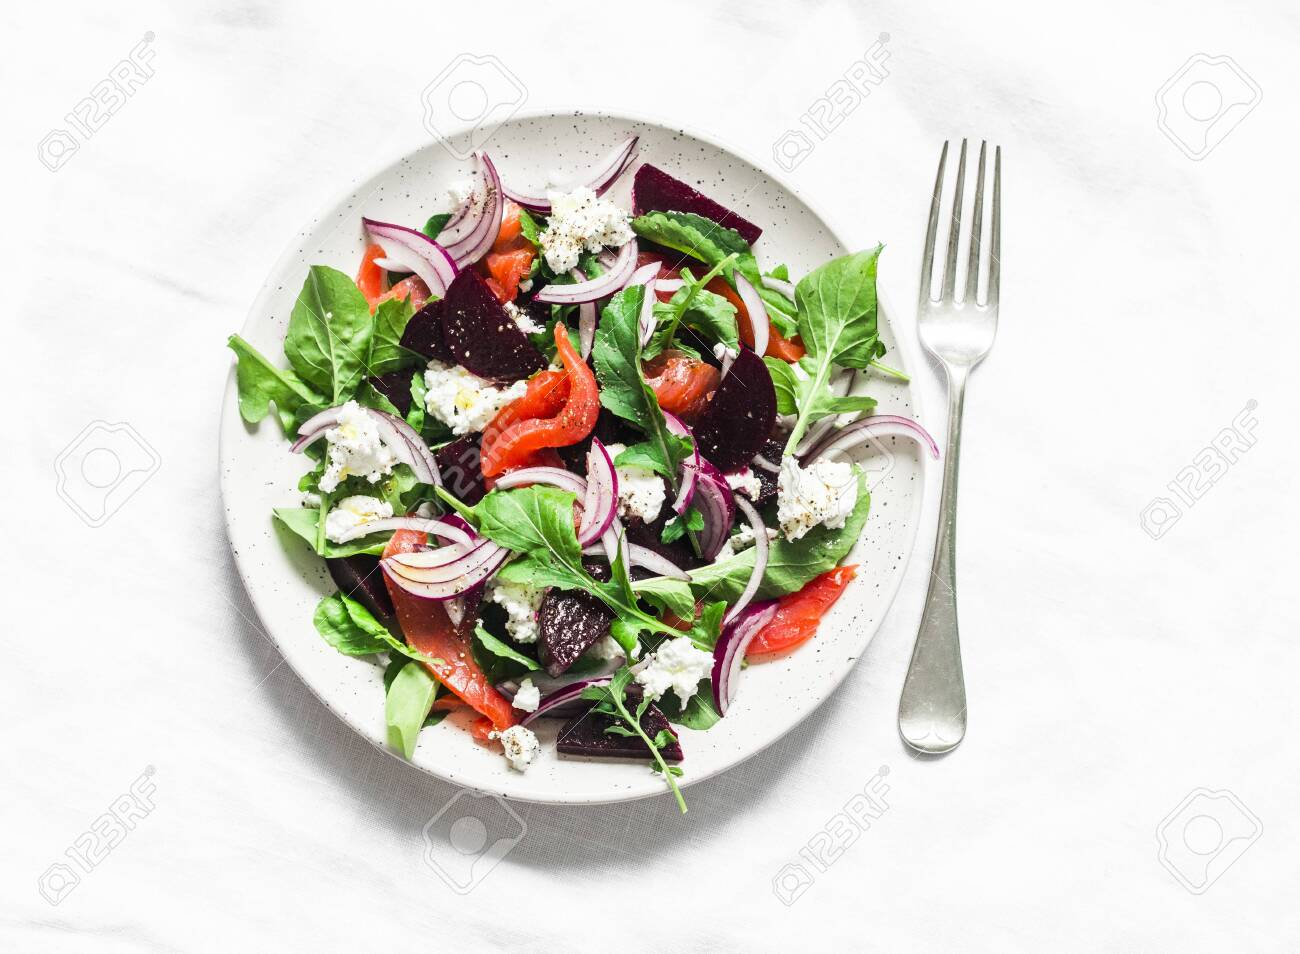 Beetroot, smoked salmon, arugula, soft cheese salad on a light background, top view - 135856122